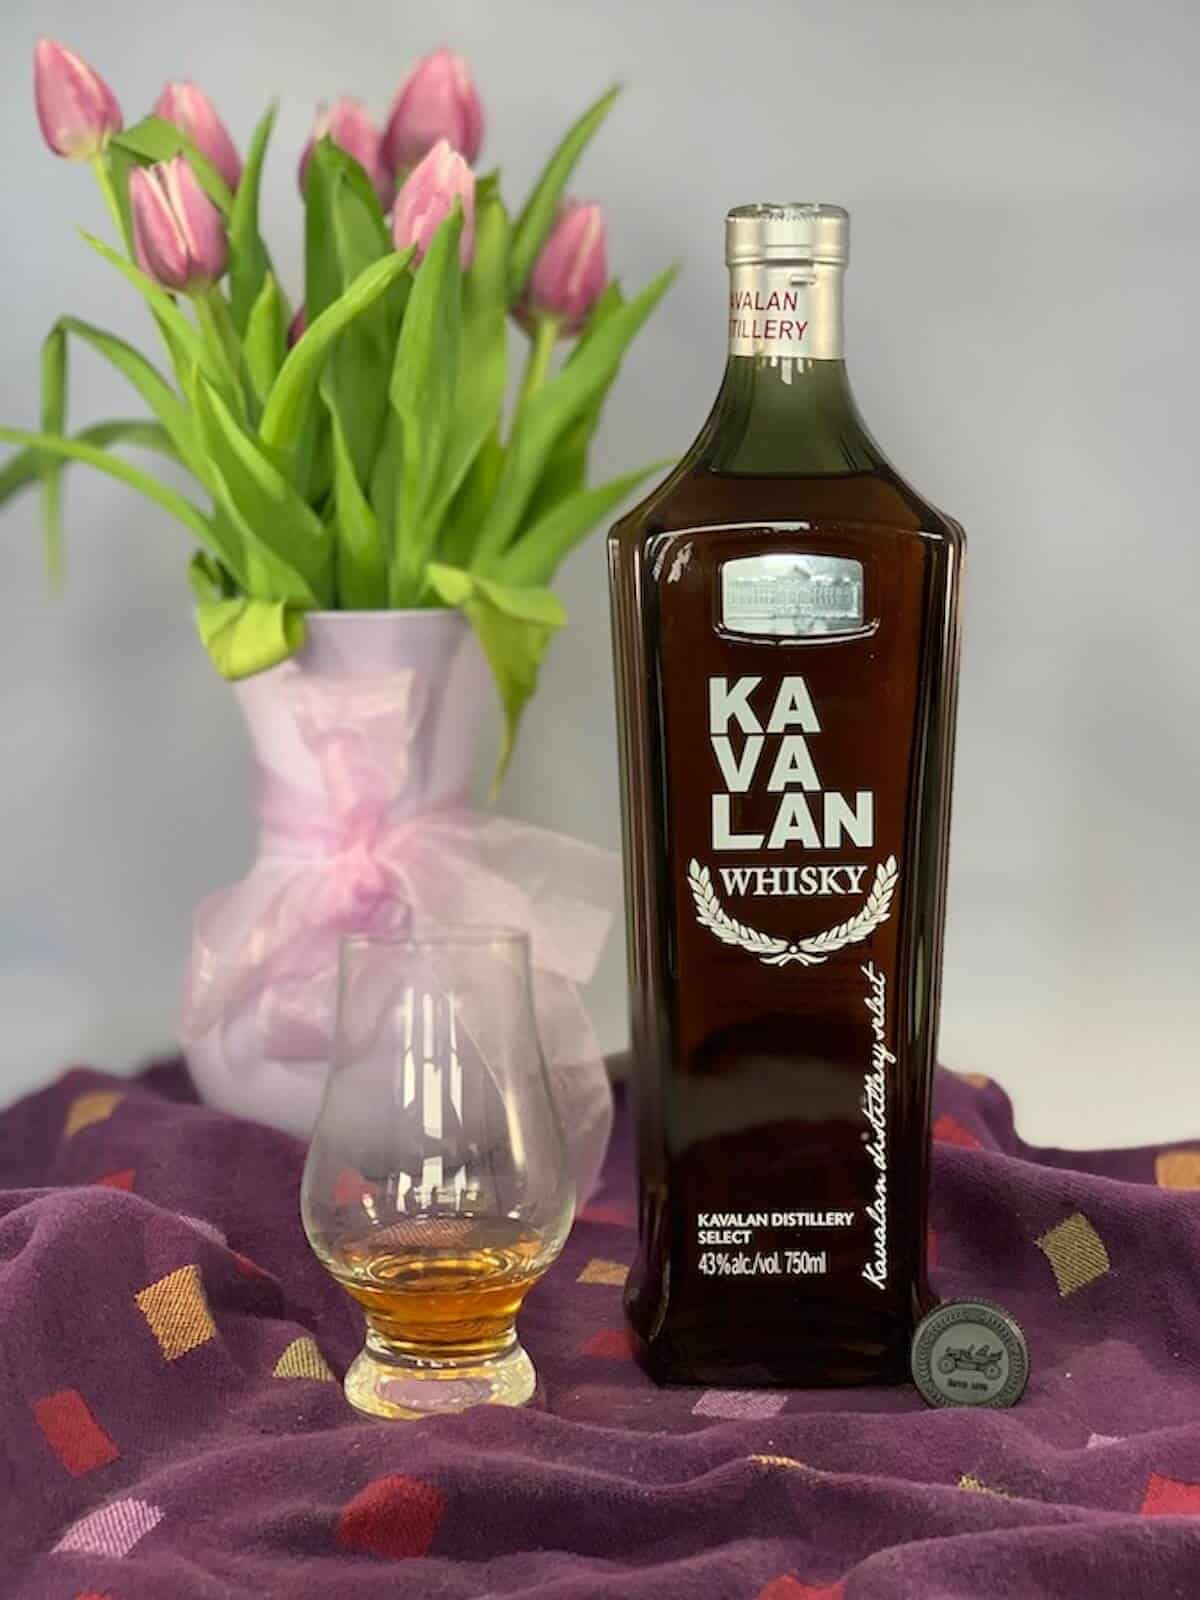 Kavalan Whisky in bottle with poured glass